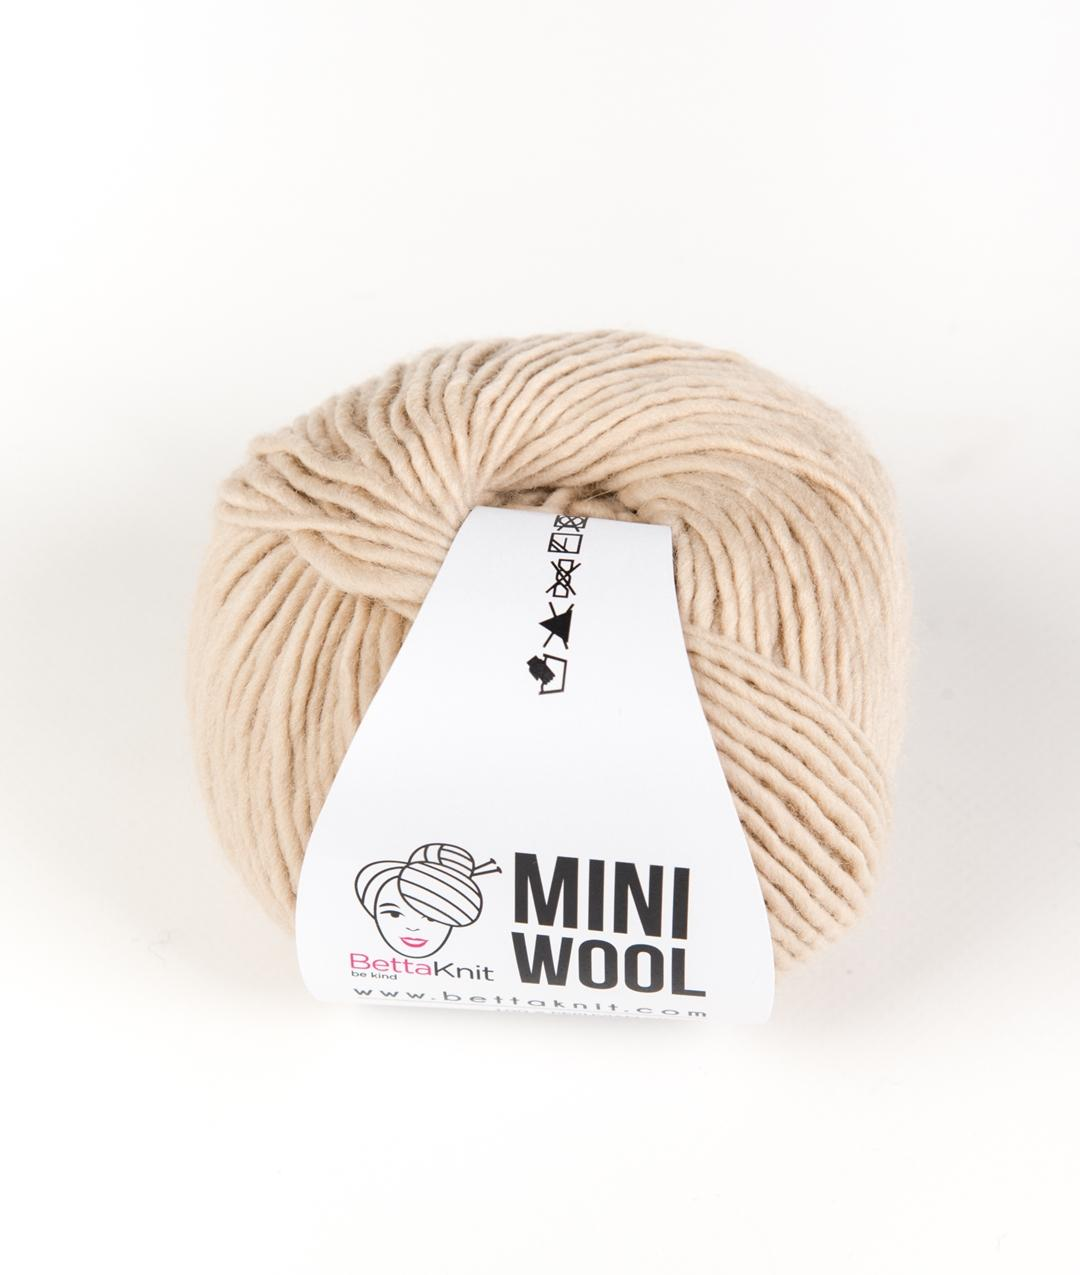 Lana - Gomitoli - Mini Wool - 1